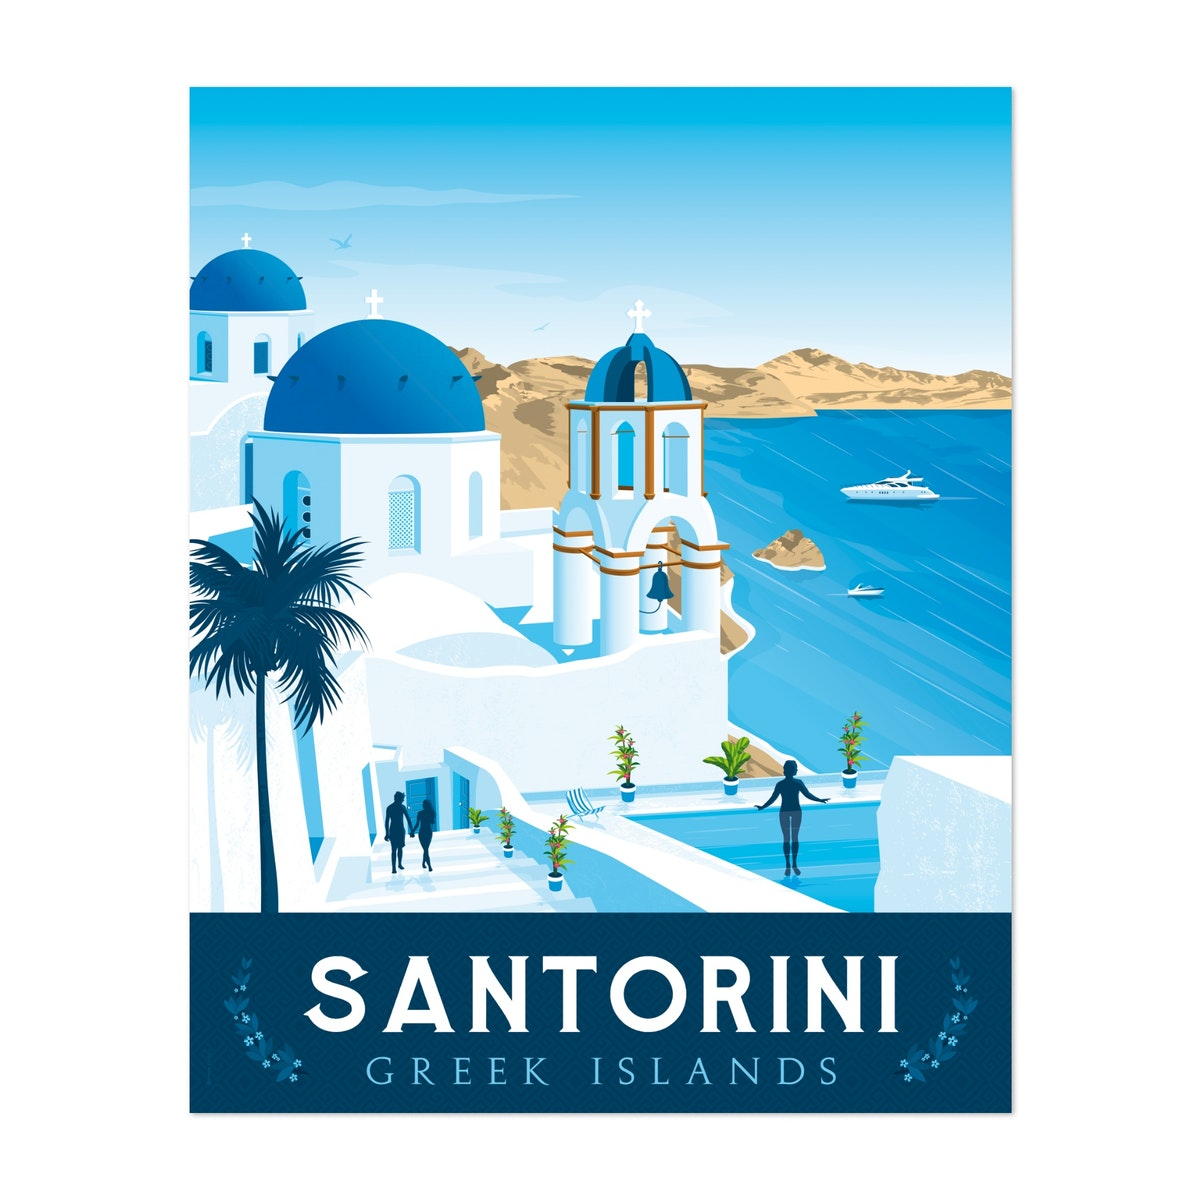 SANTORINI Travel Poster